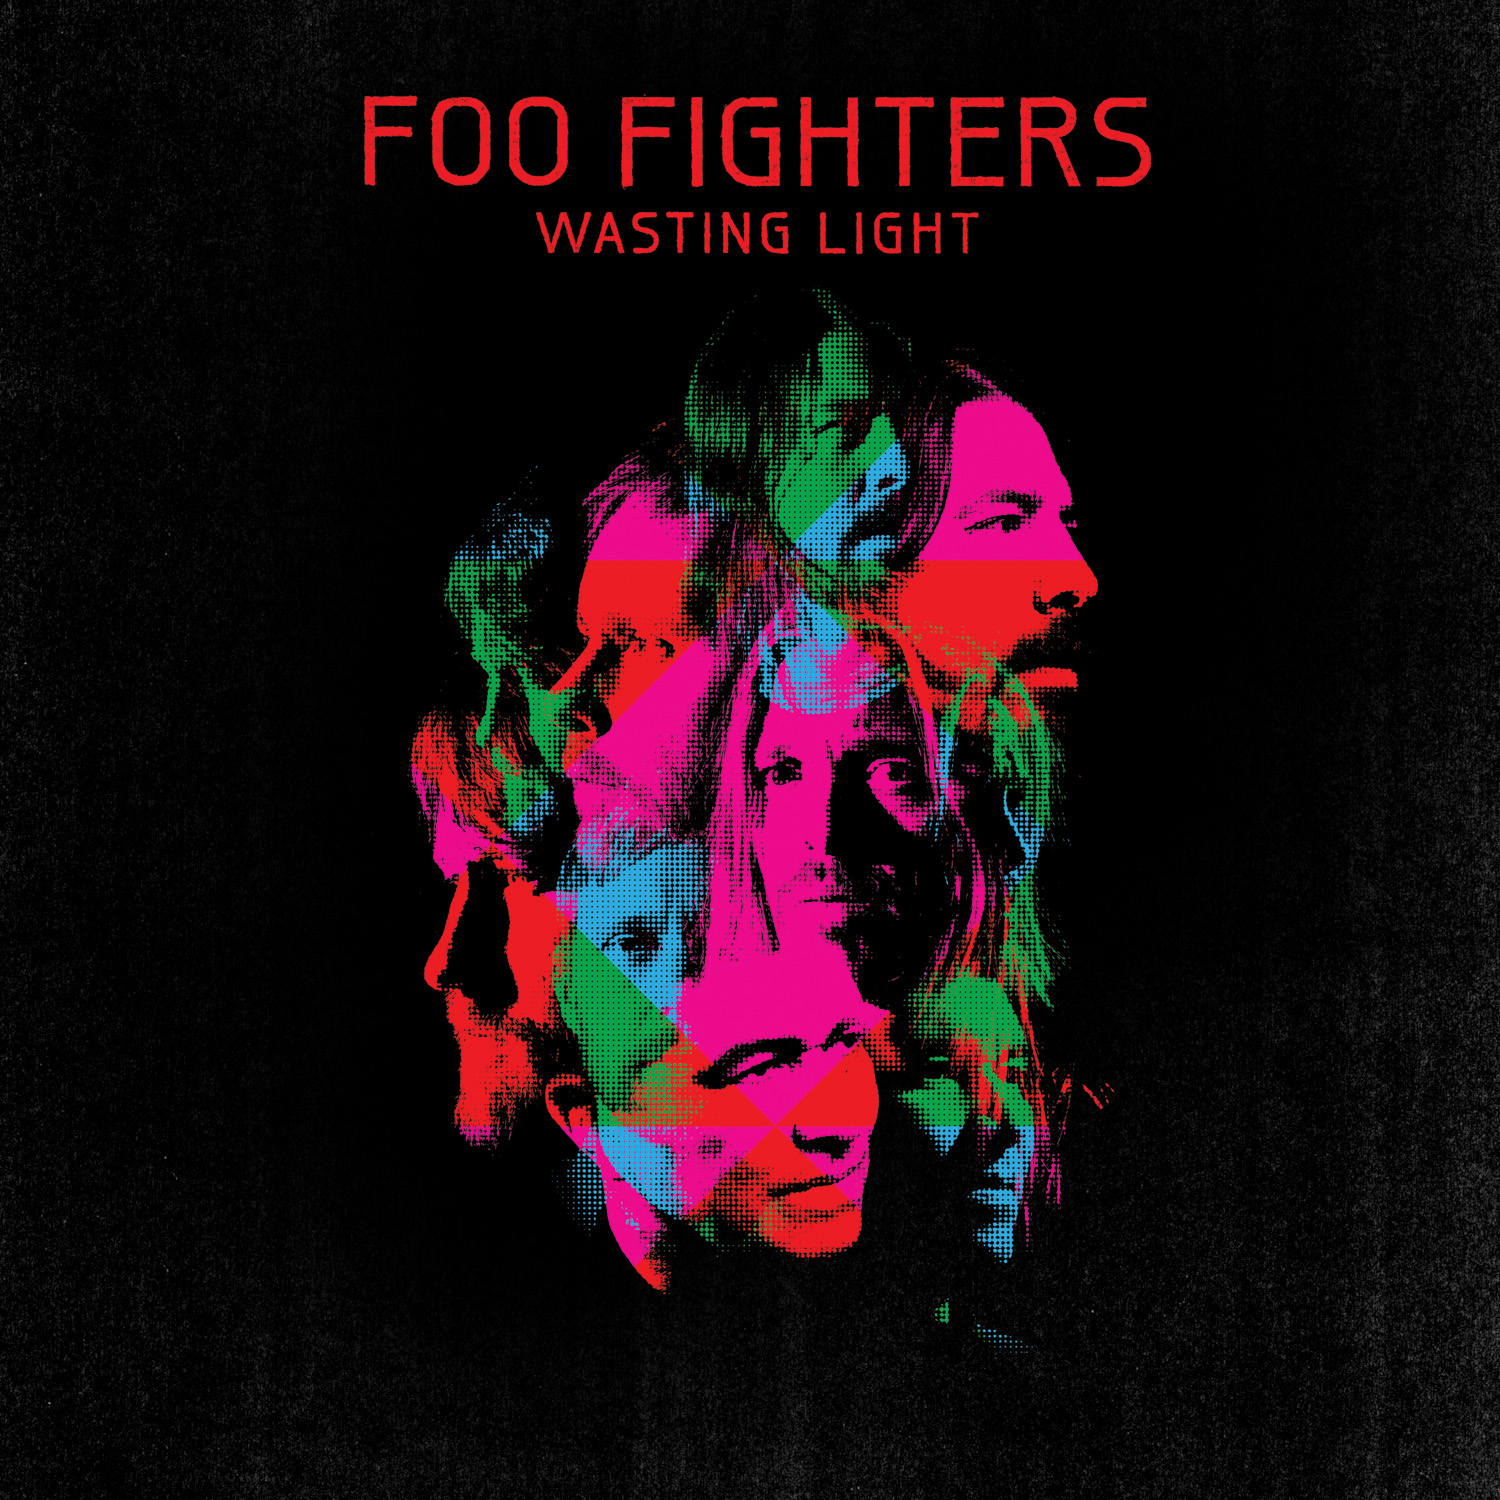 http://1.bp.blogspot.com/-HoGVwqi93kQ/TWyiz_2T-8I/AAAAAAAADFM/fjcUhkVbBZ8/s1600/Foo_Fighters_Wasting_Light_Album_Cover.jpg